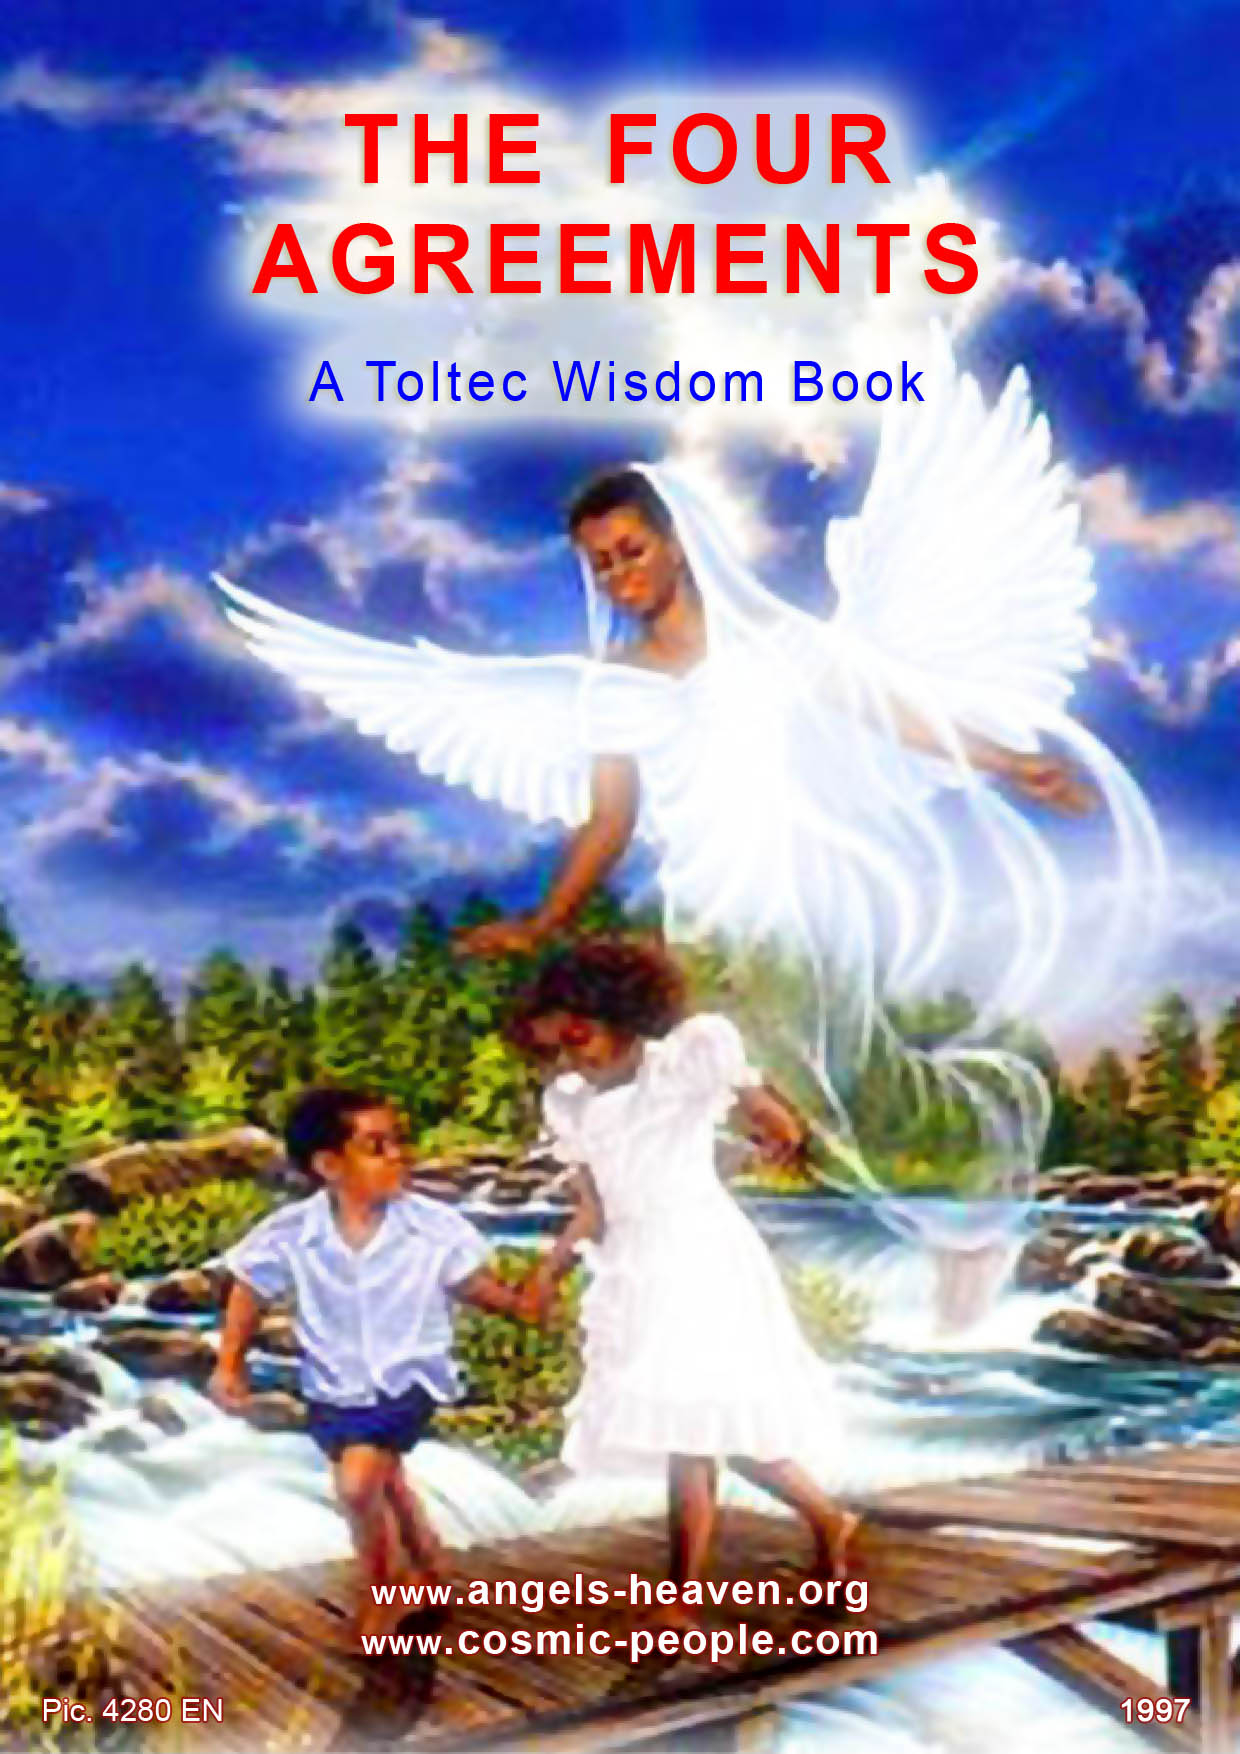 Four Agreements Book Free Download The Four Agreements Angels Heaven Cosmic People